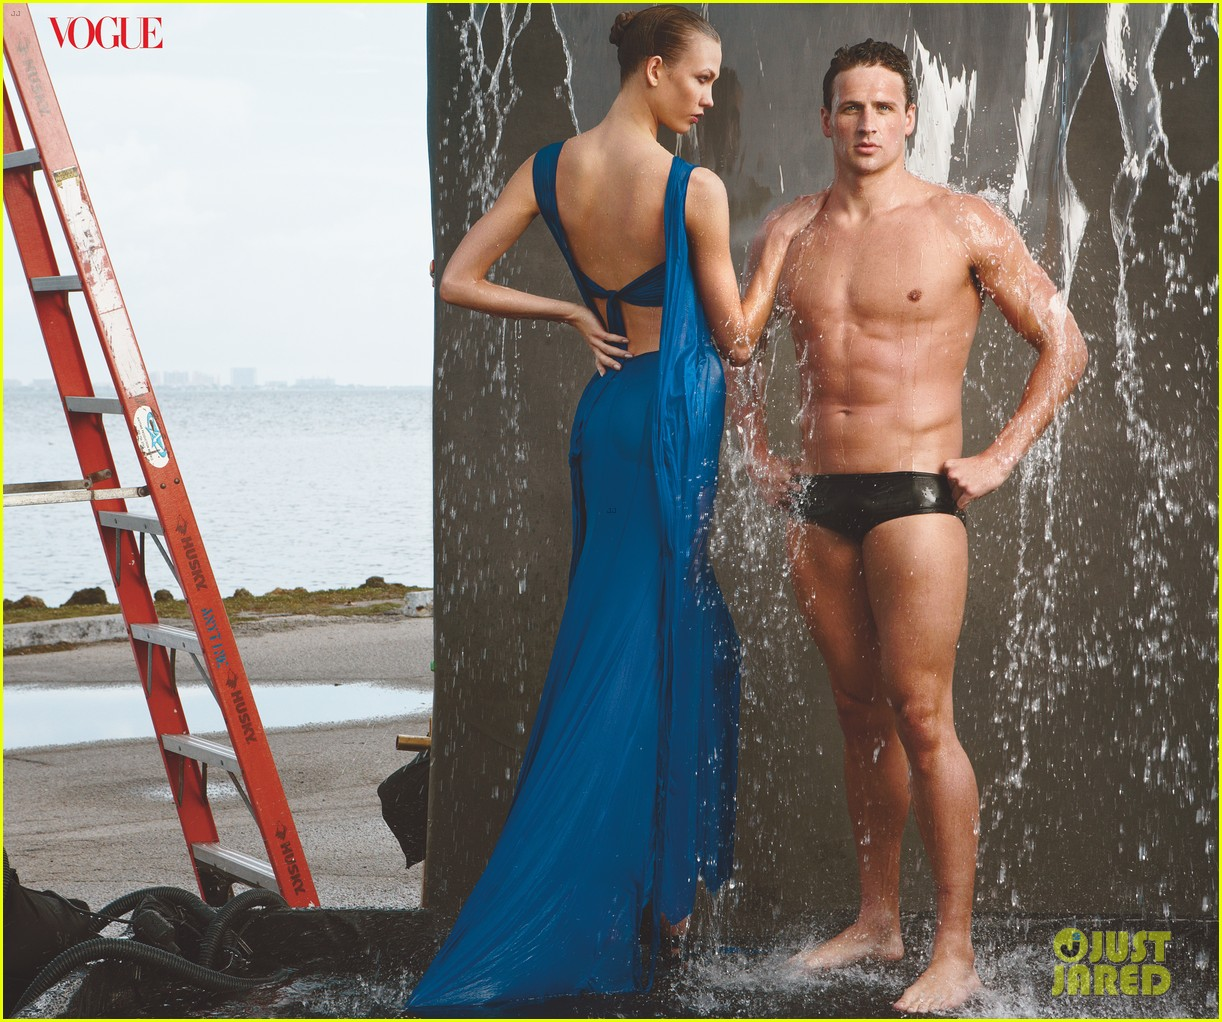 serena williams ryan lochte vogue june 2012 03